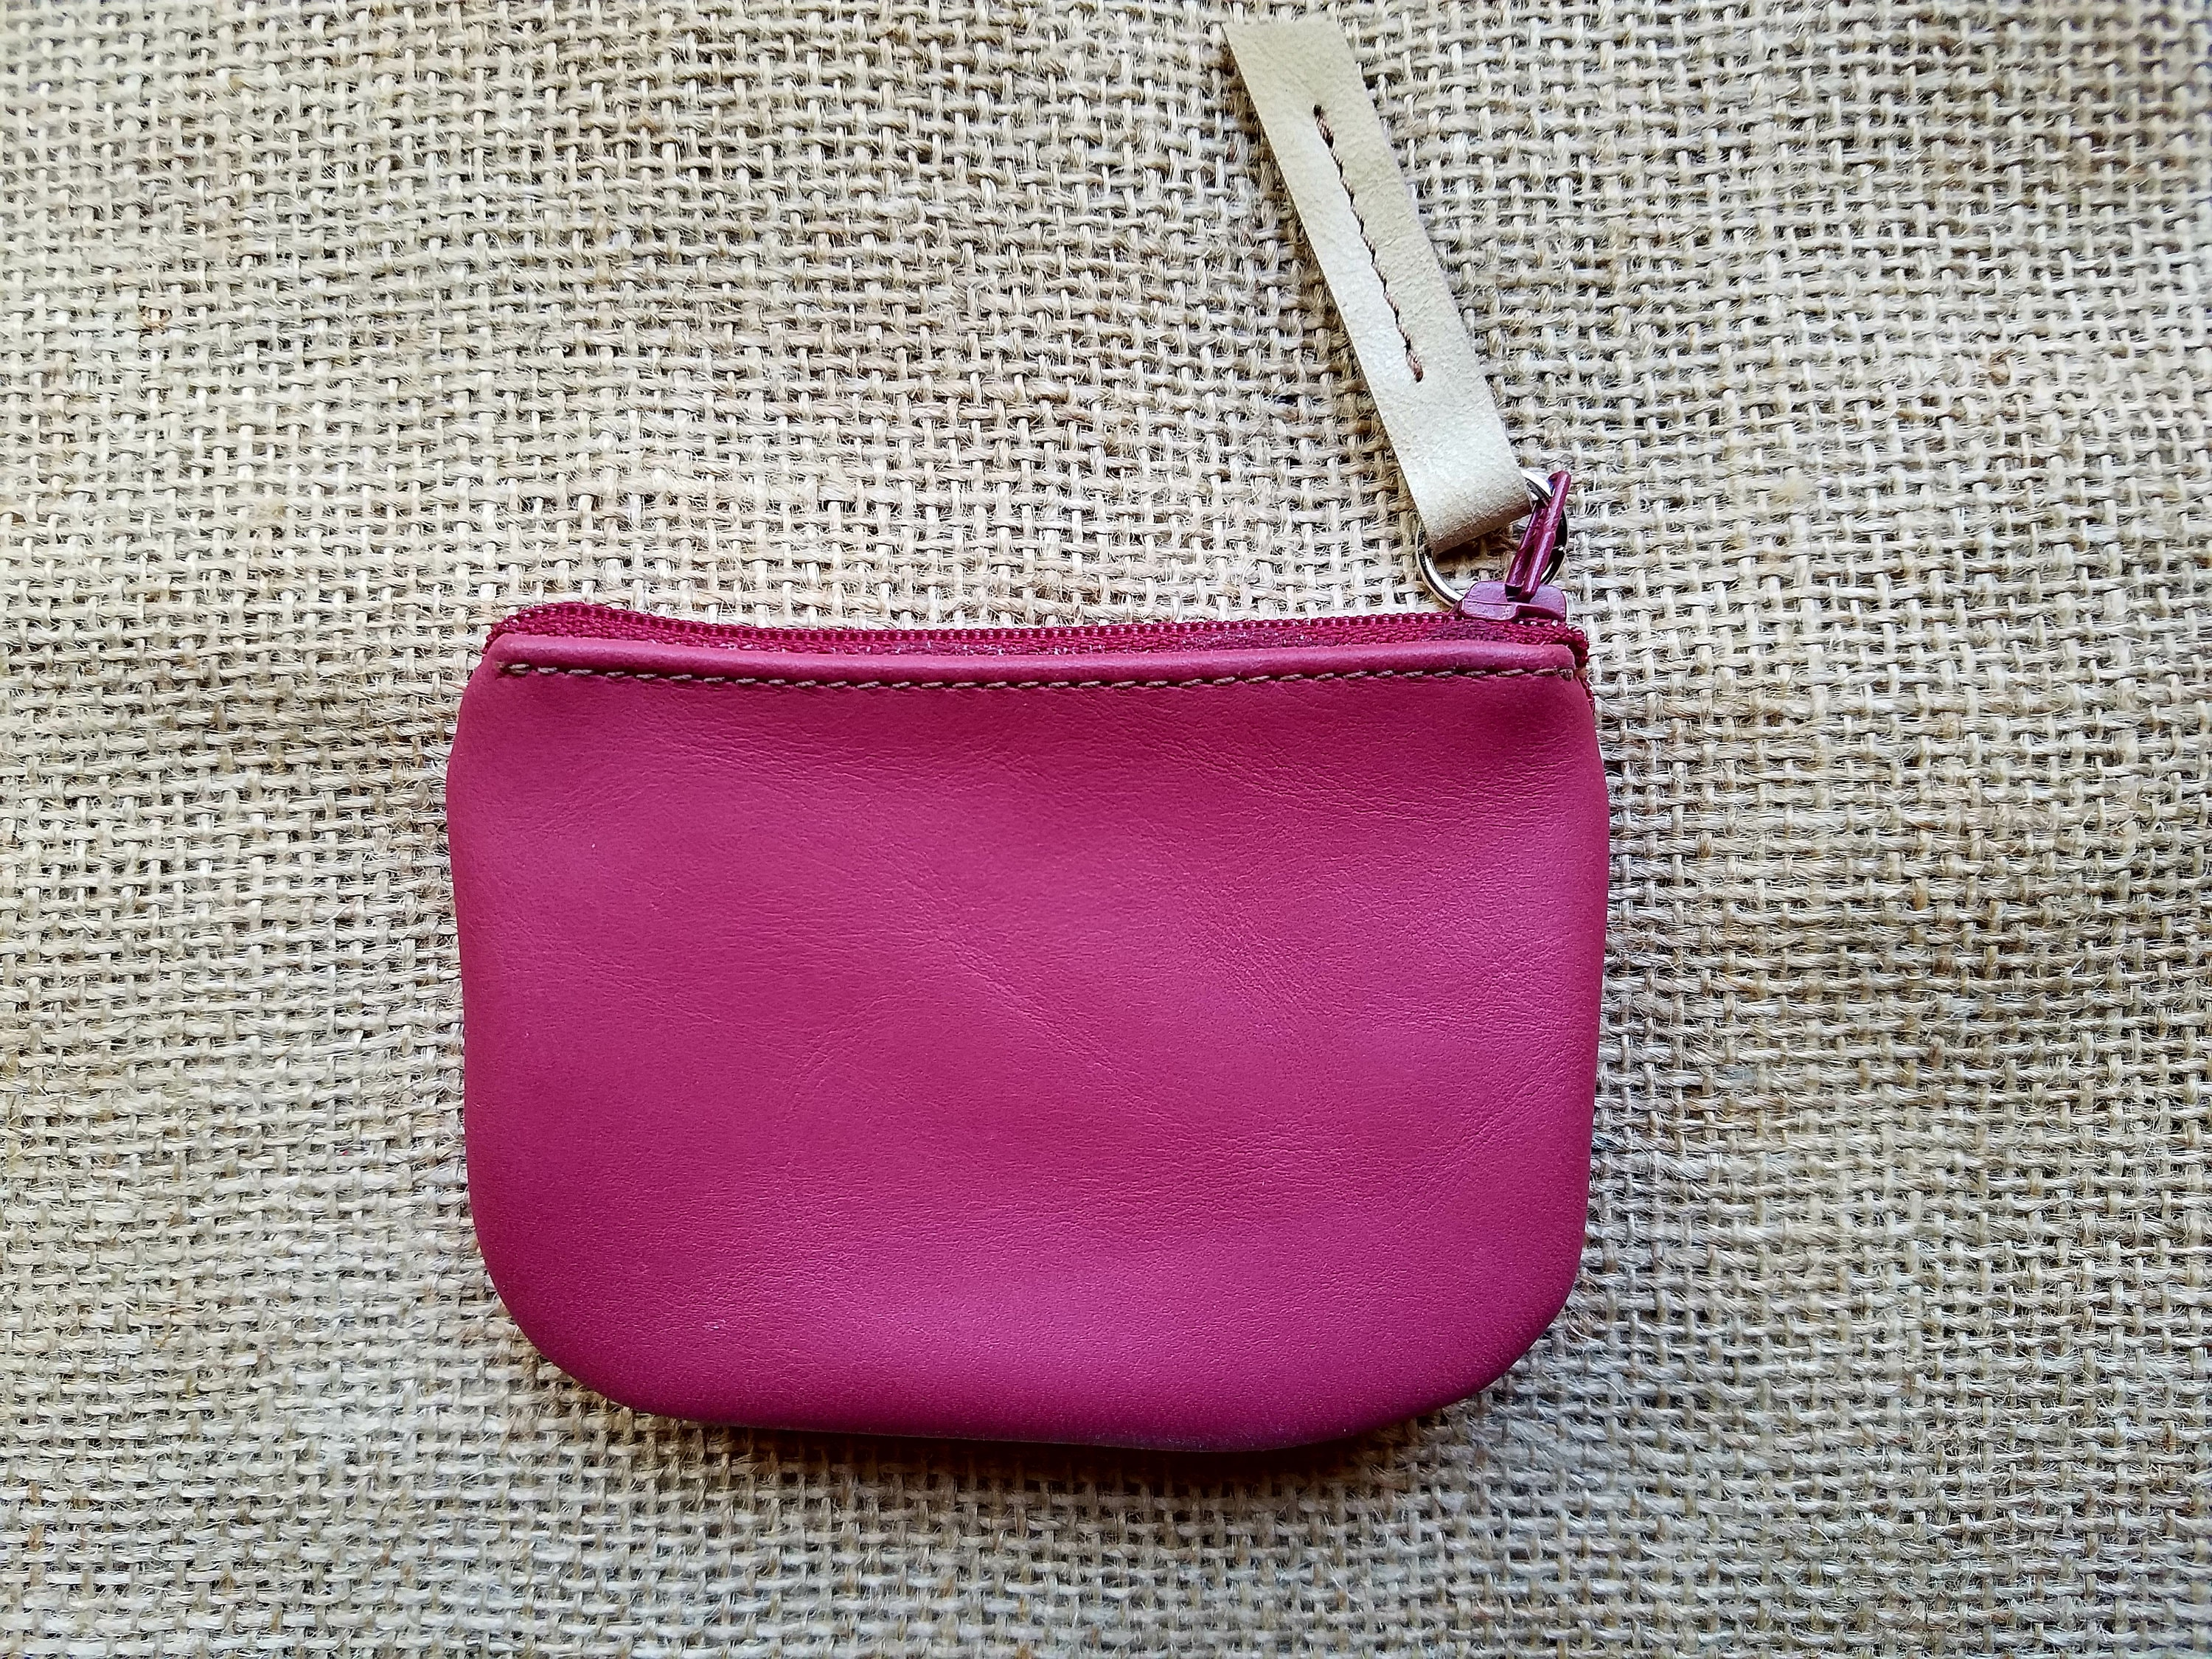 Handmade Leather Pink Pouch / Coin Purse / Leather Pink Wallet ...